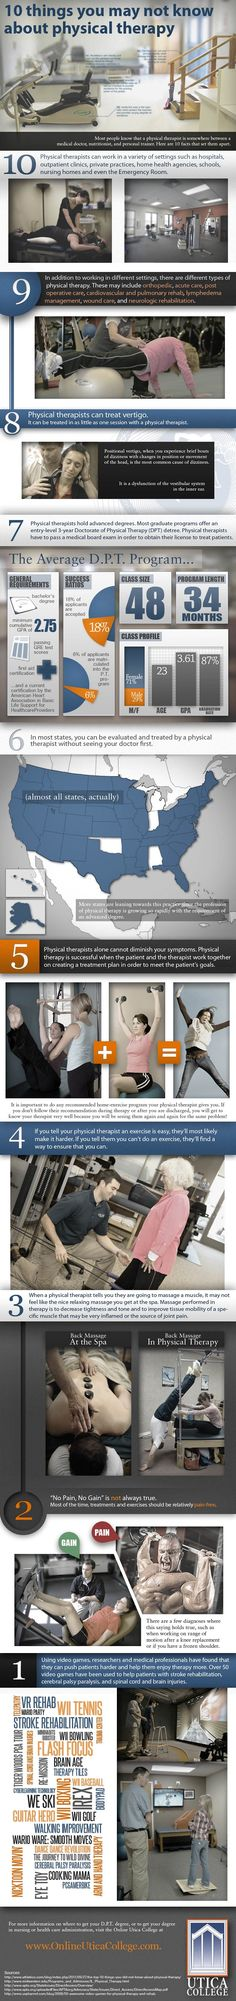 How To Prepare For Physical Therapy School | DPT Requirements 2014